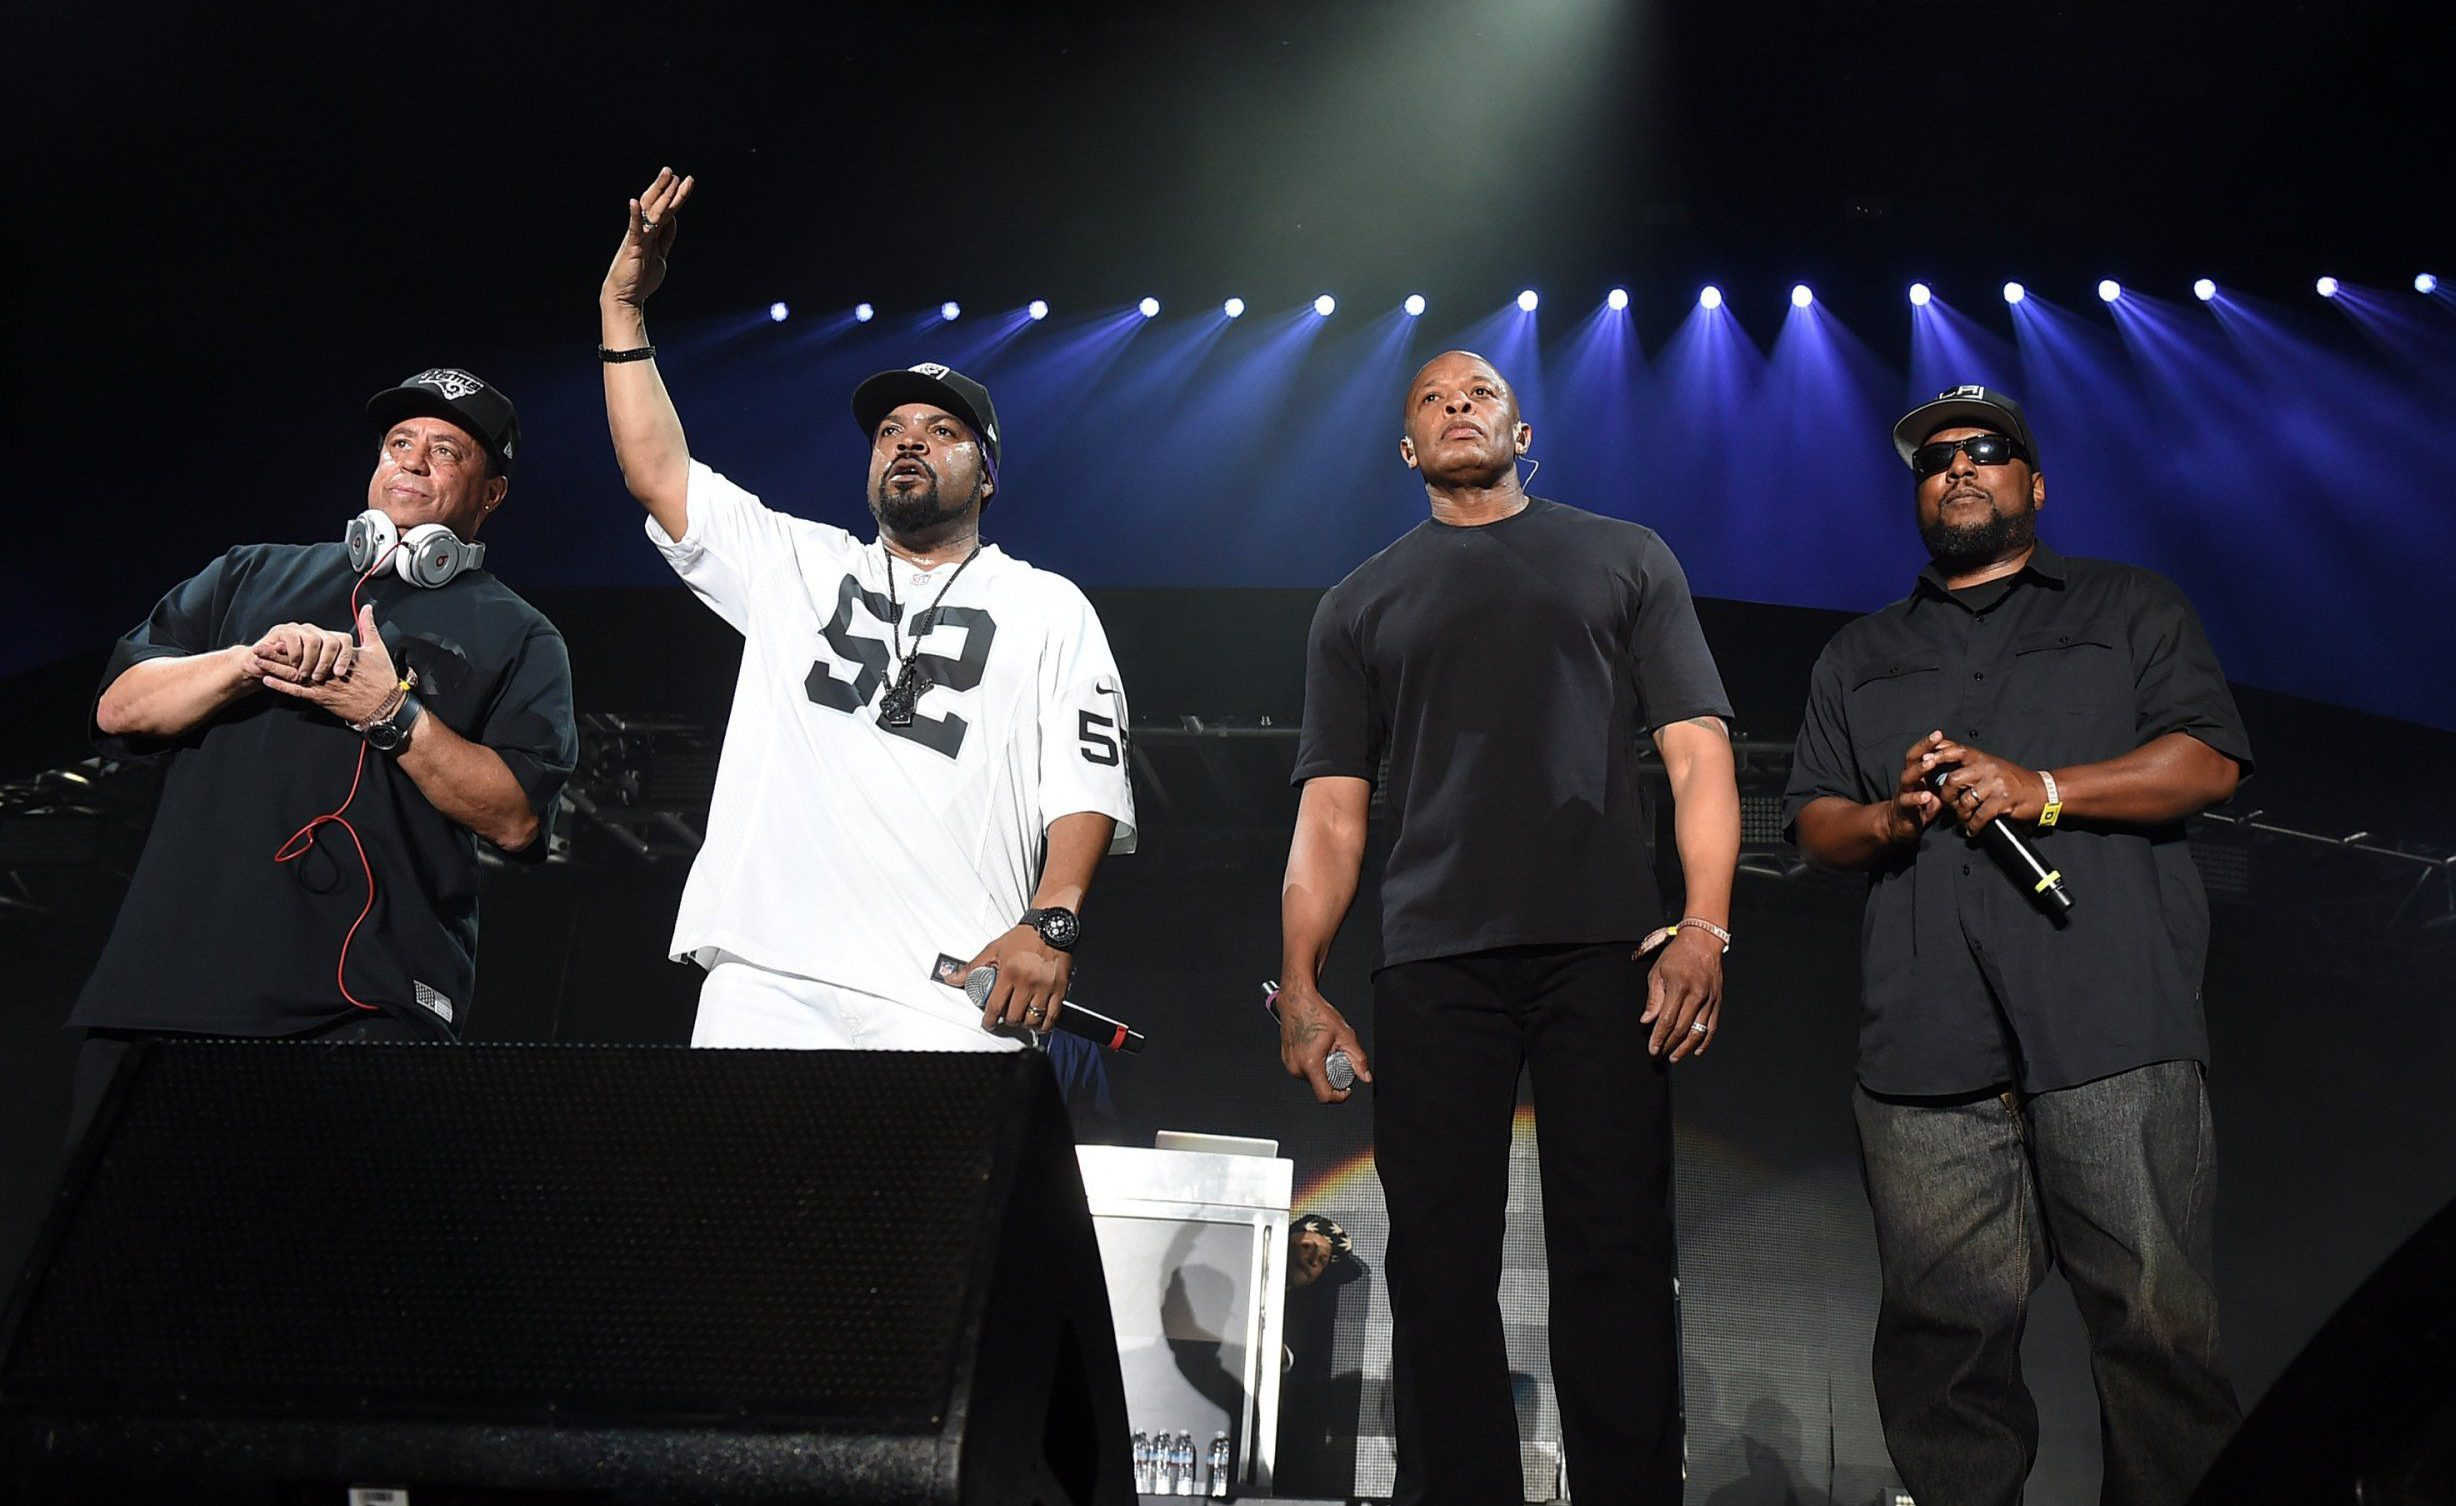 Dr Dre joined Ice Cube for an N.W.A. reunion at Coachella but he only rapped HIS hits